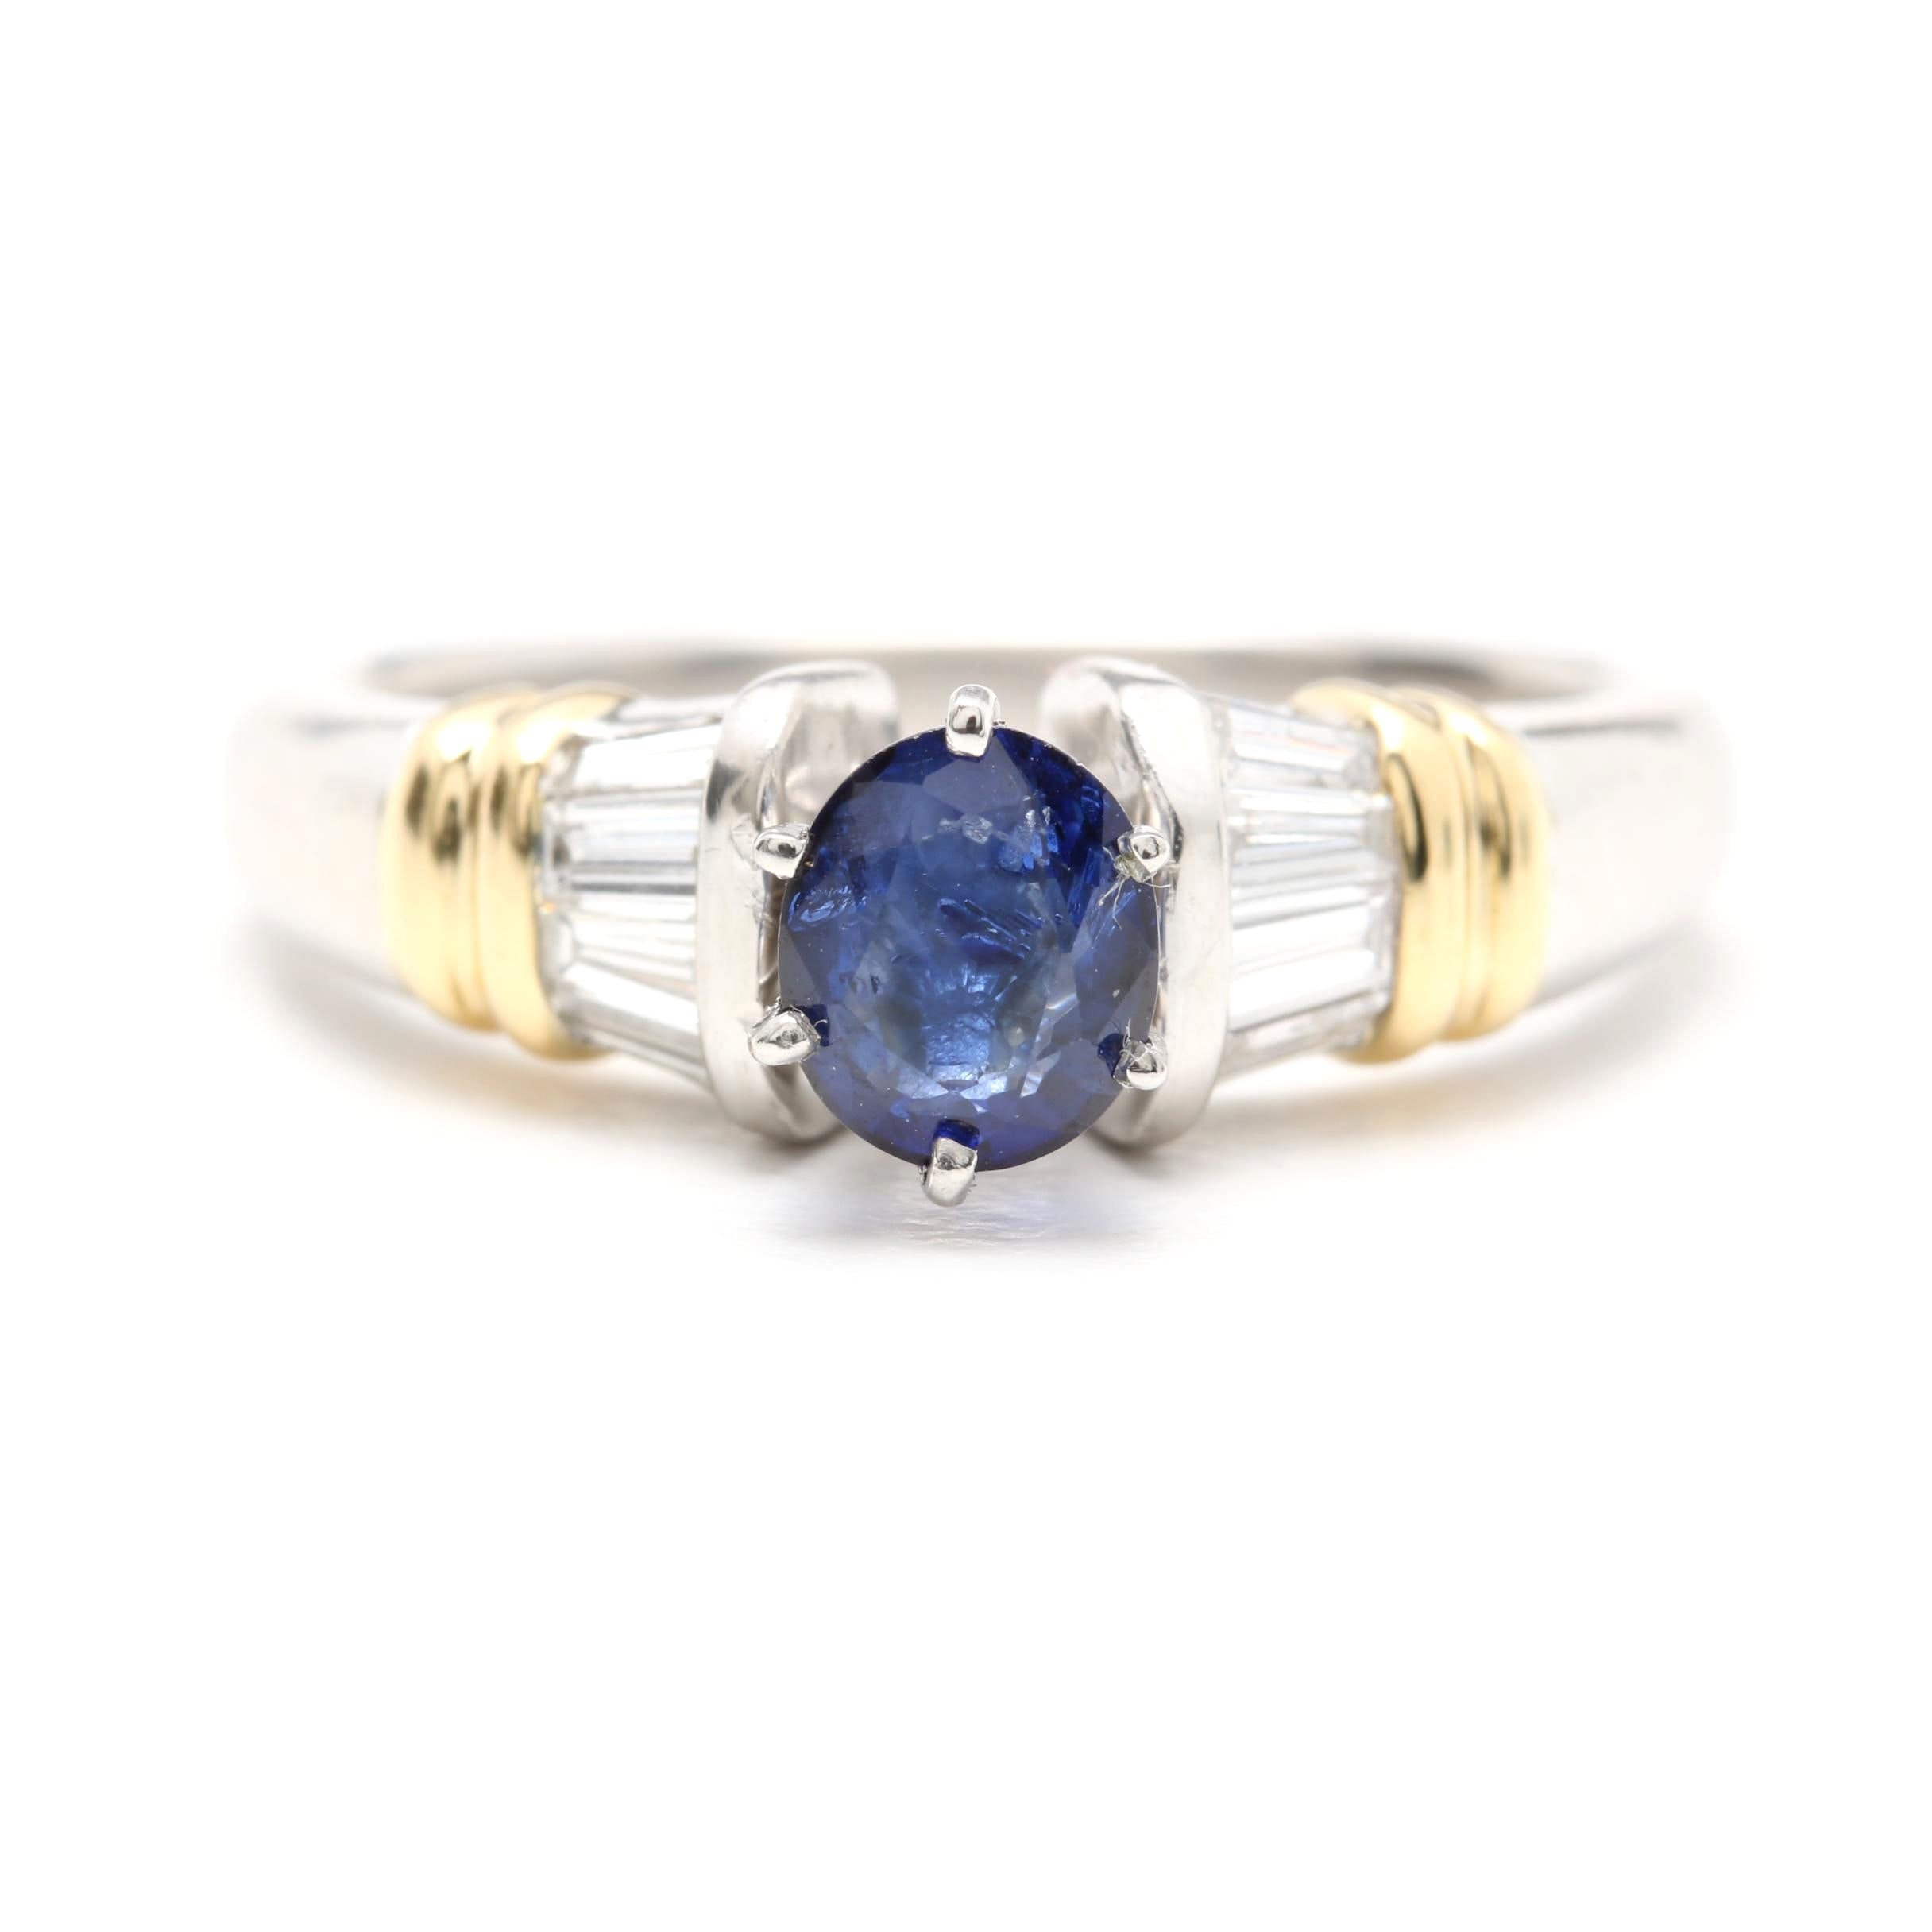 Platinum Sapphire and Diamond Ring with 18K Yellow Gold Accents